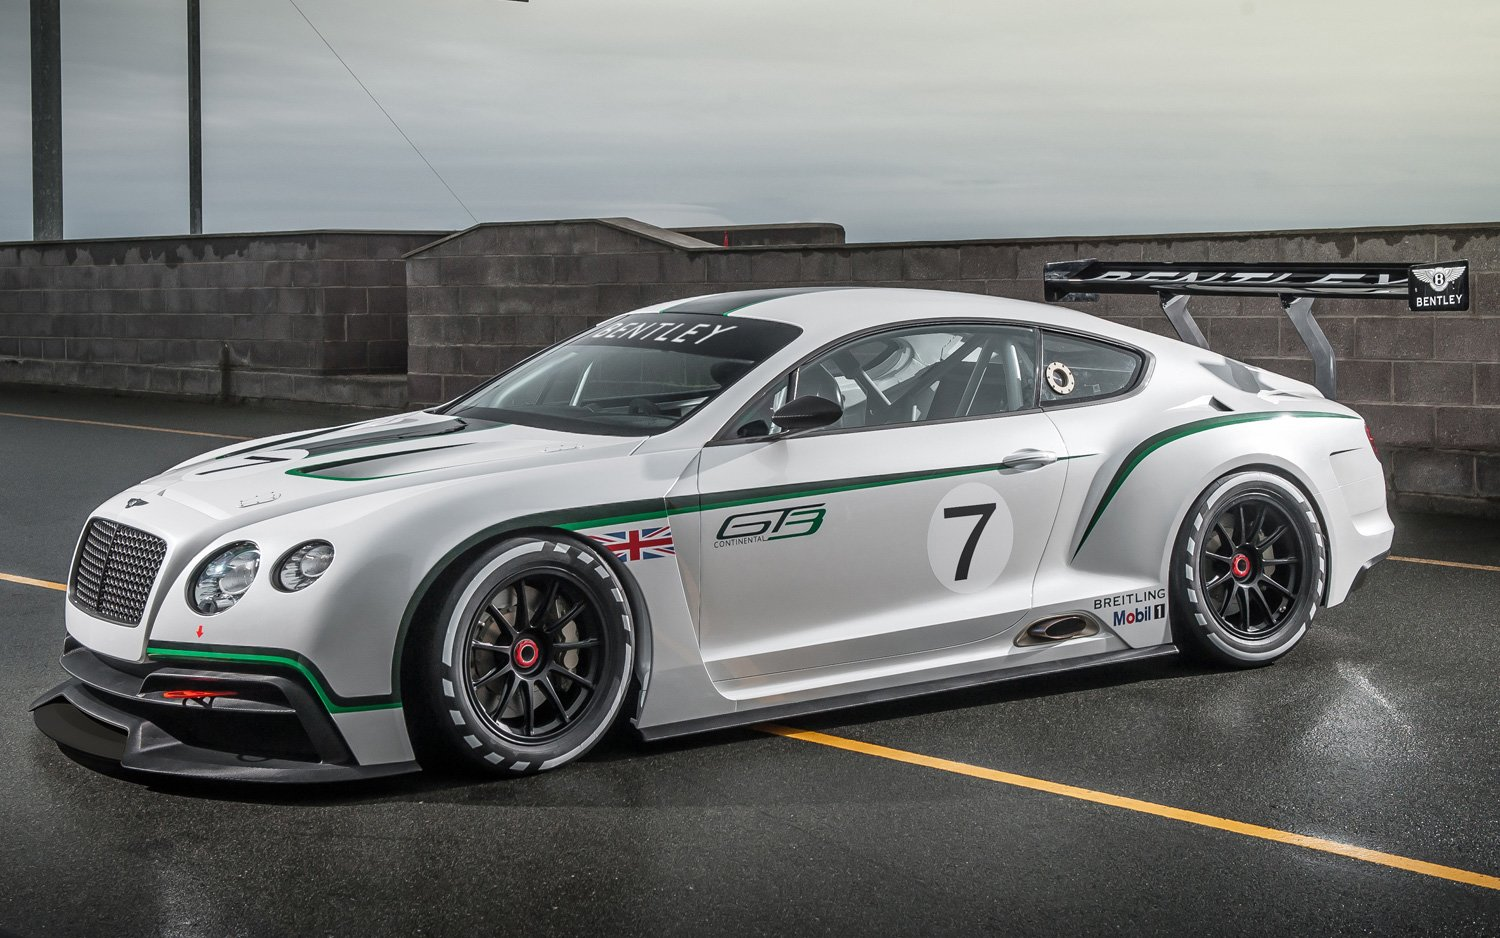 Latest Bentley Continental Gt3 Race Car New Cars Reviews Free Download